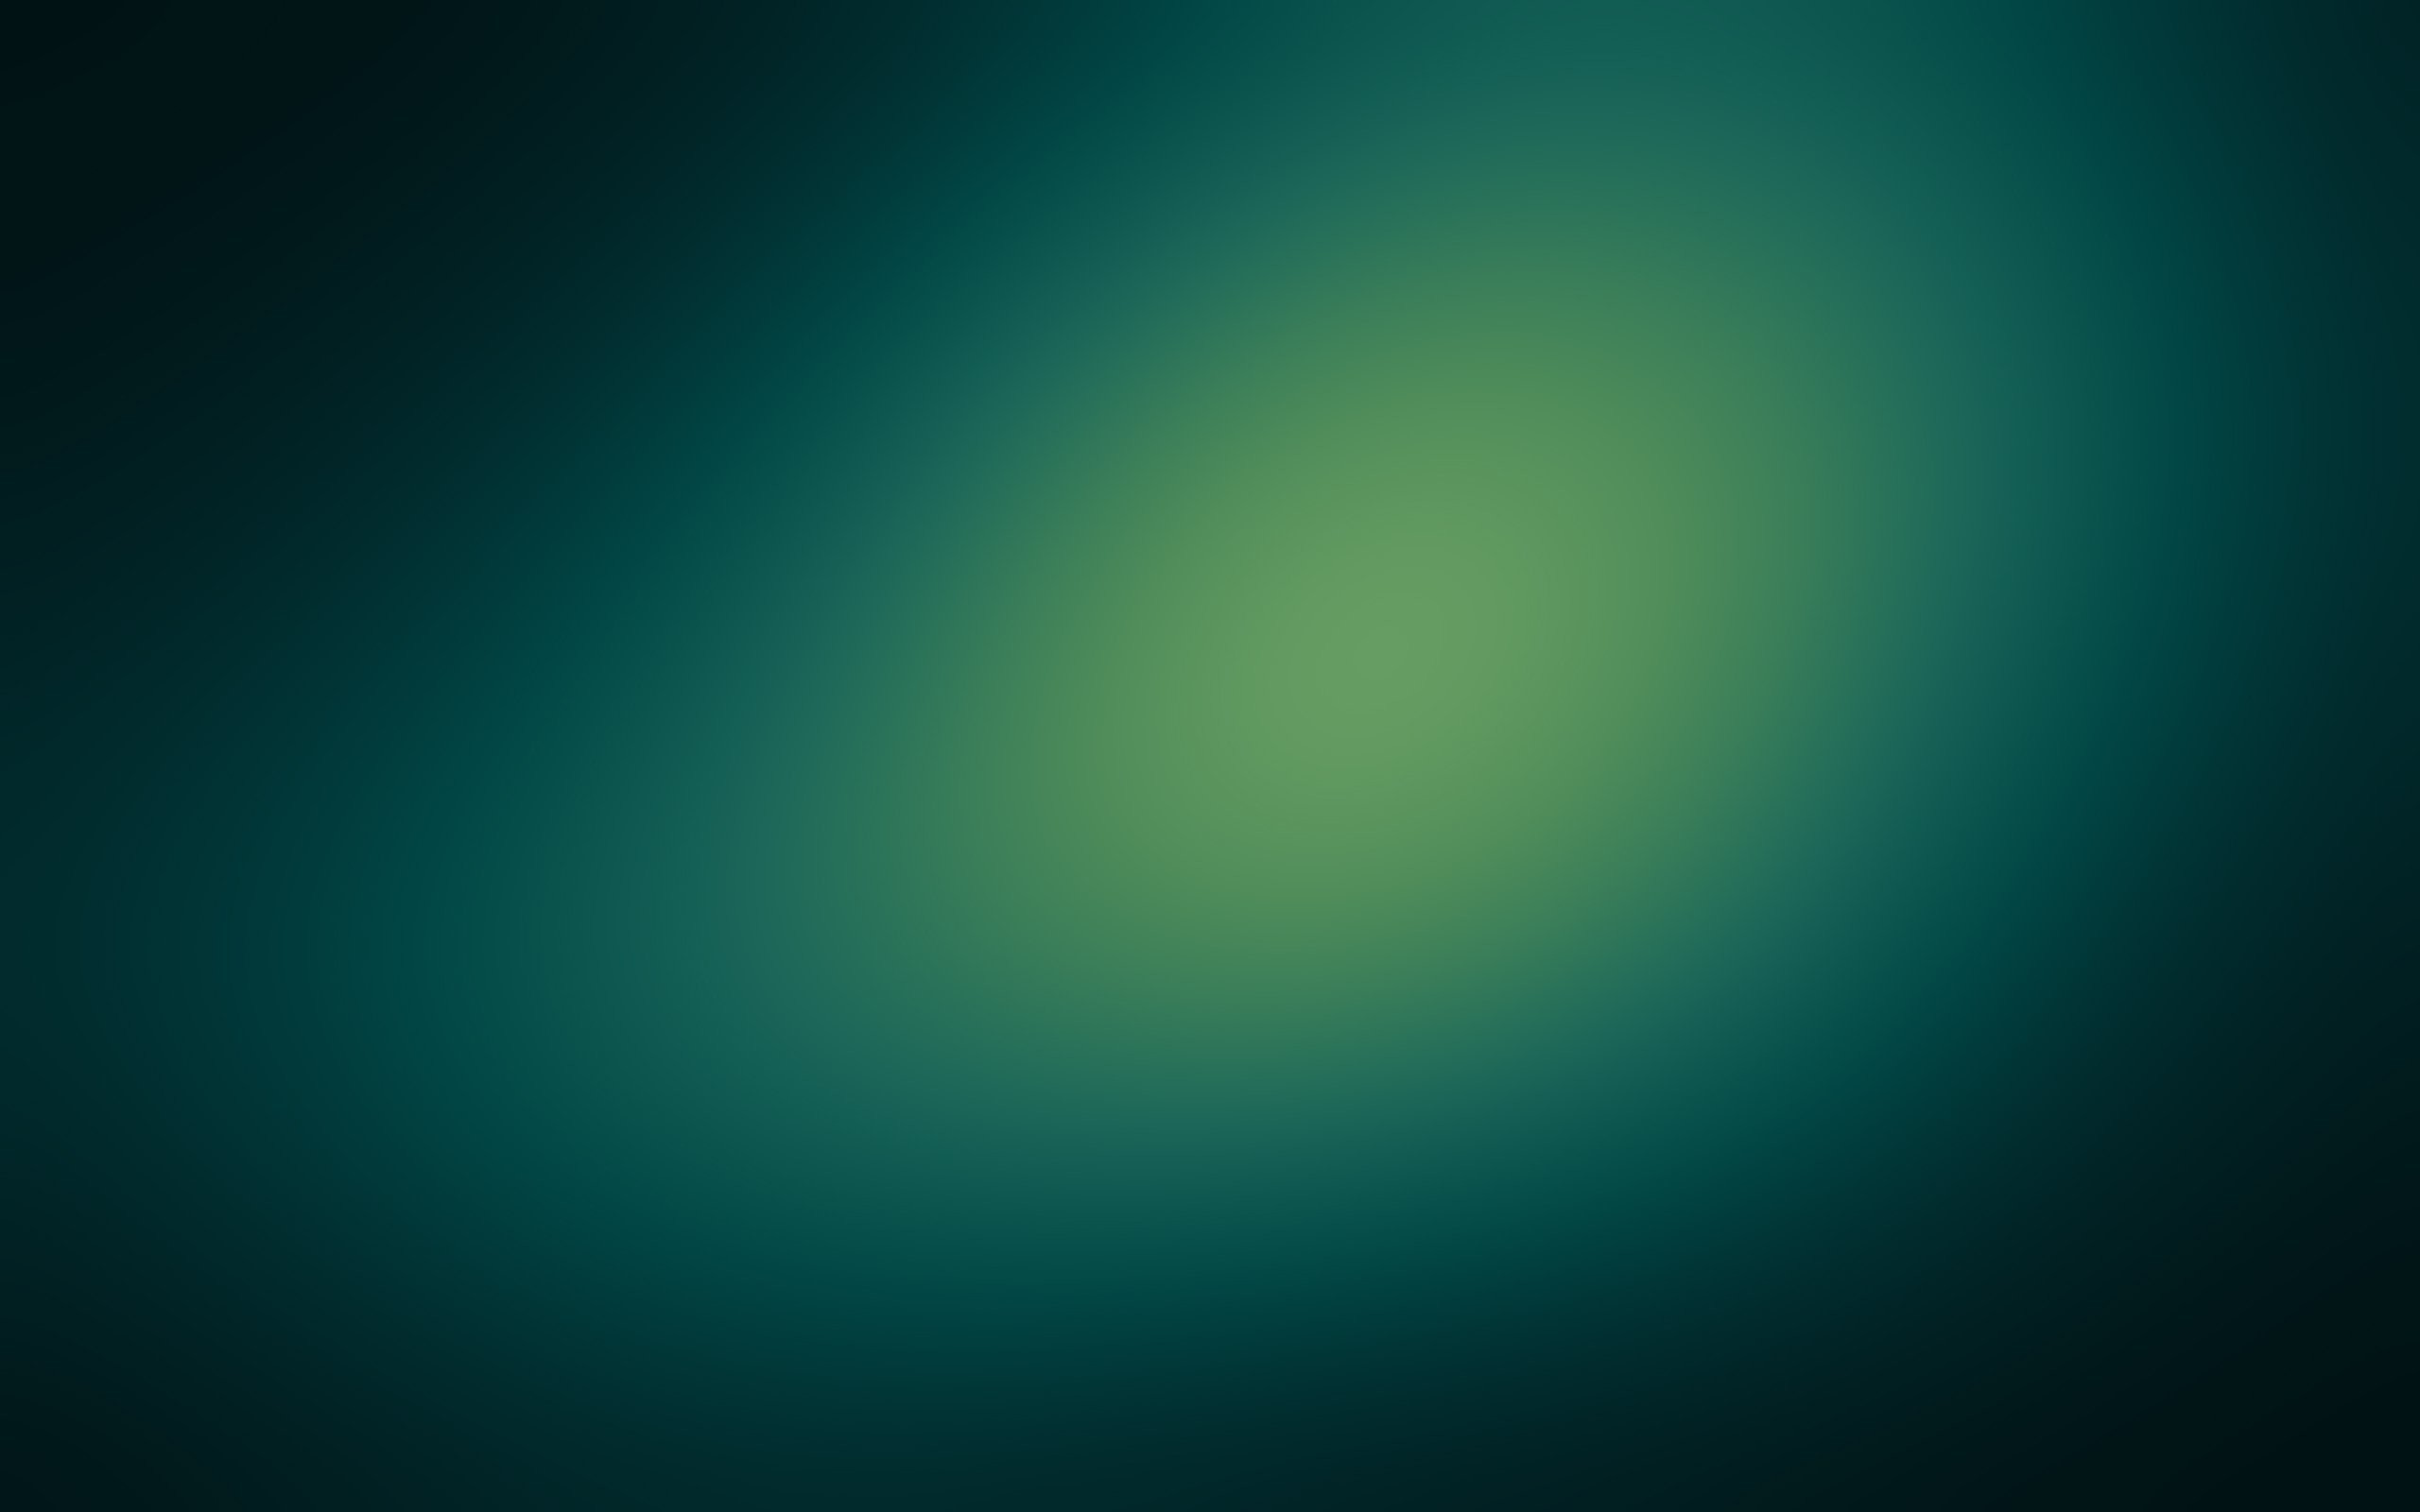 2560x1600 Dark Green Background 520784